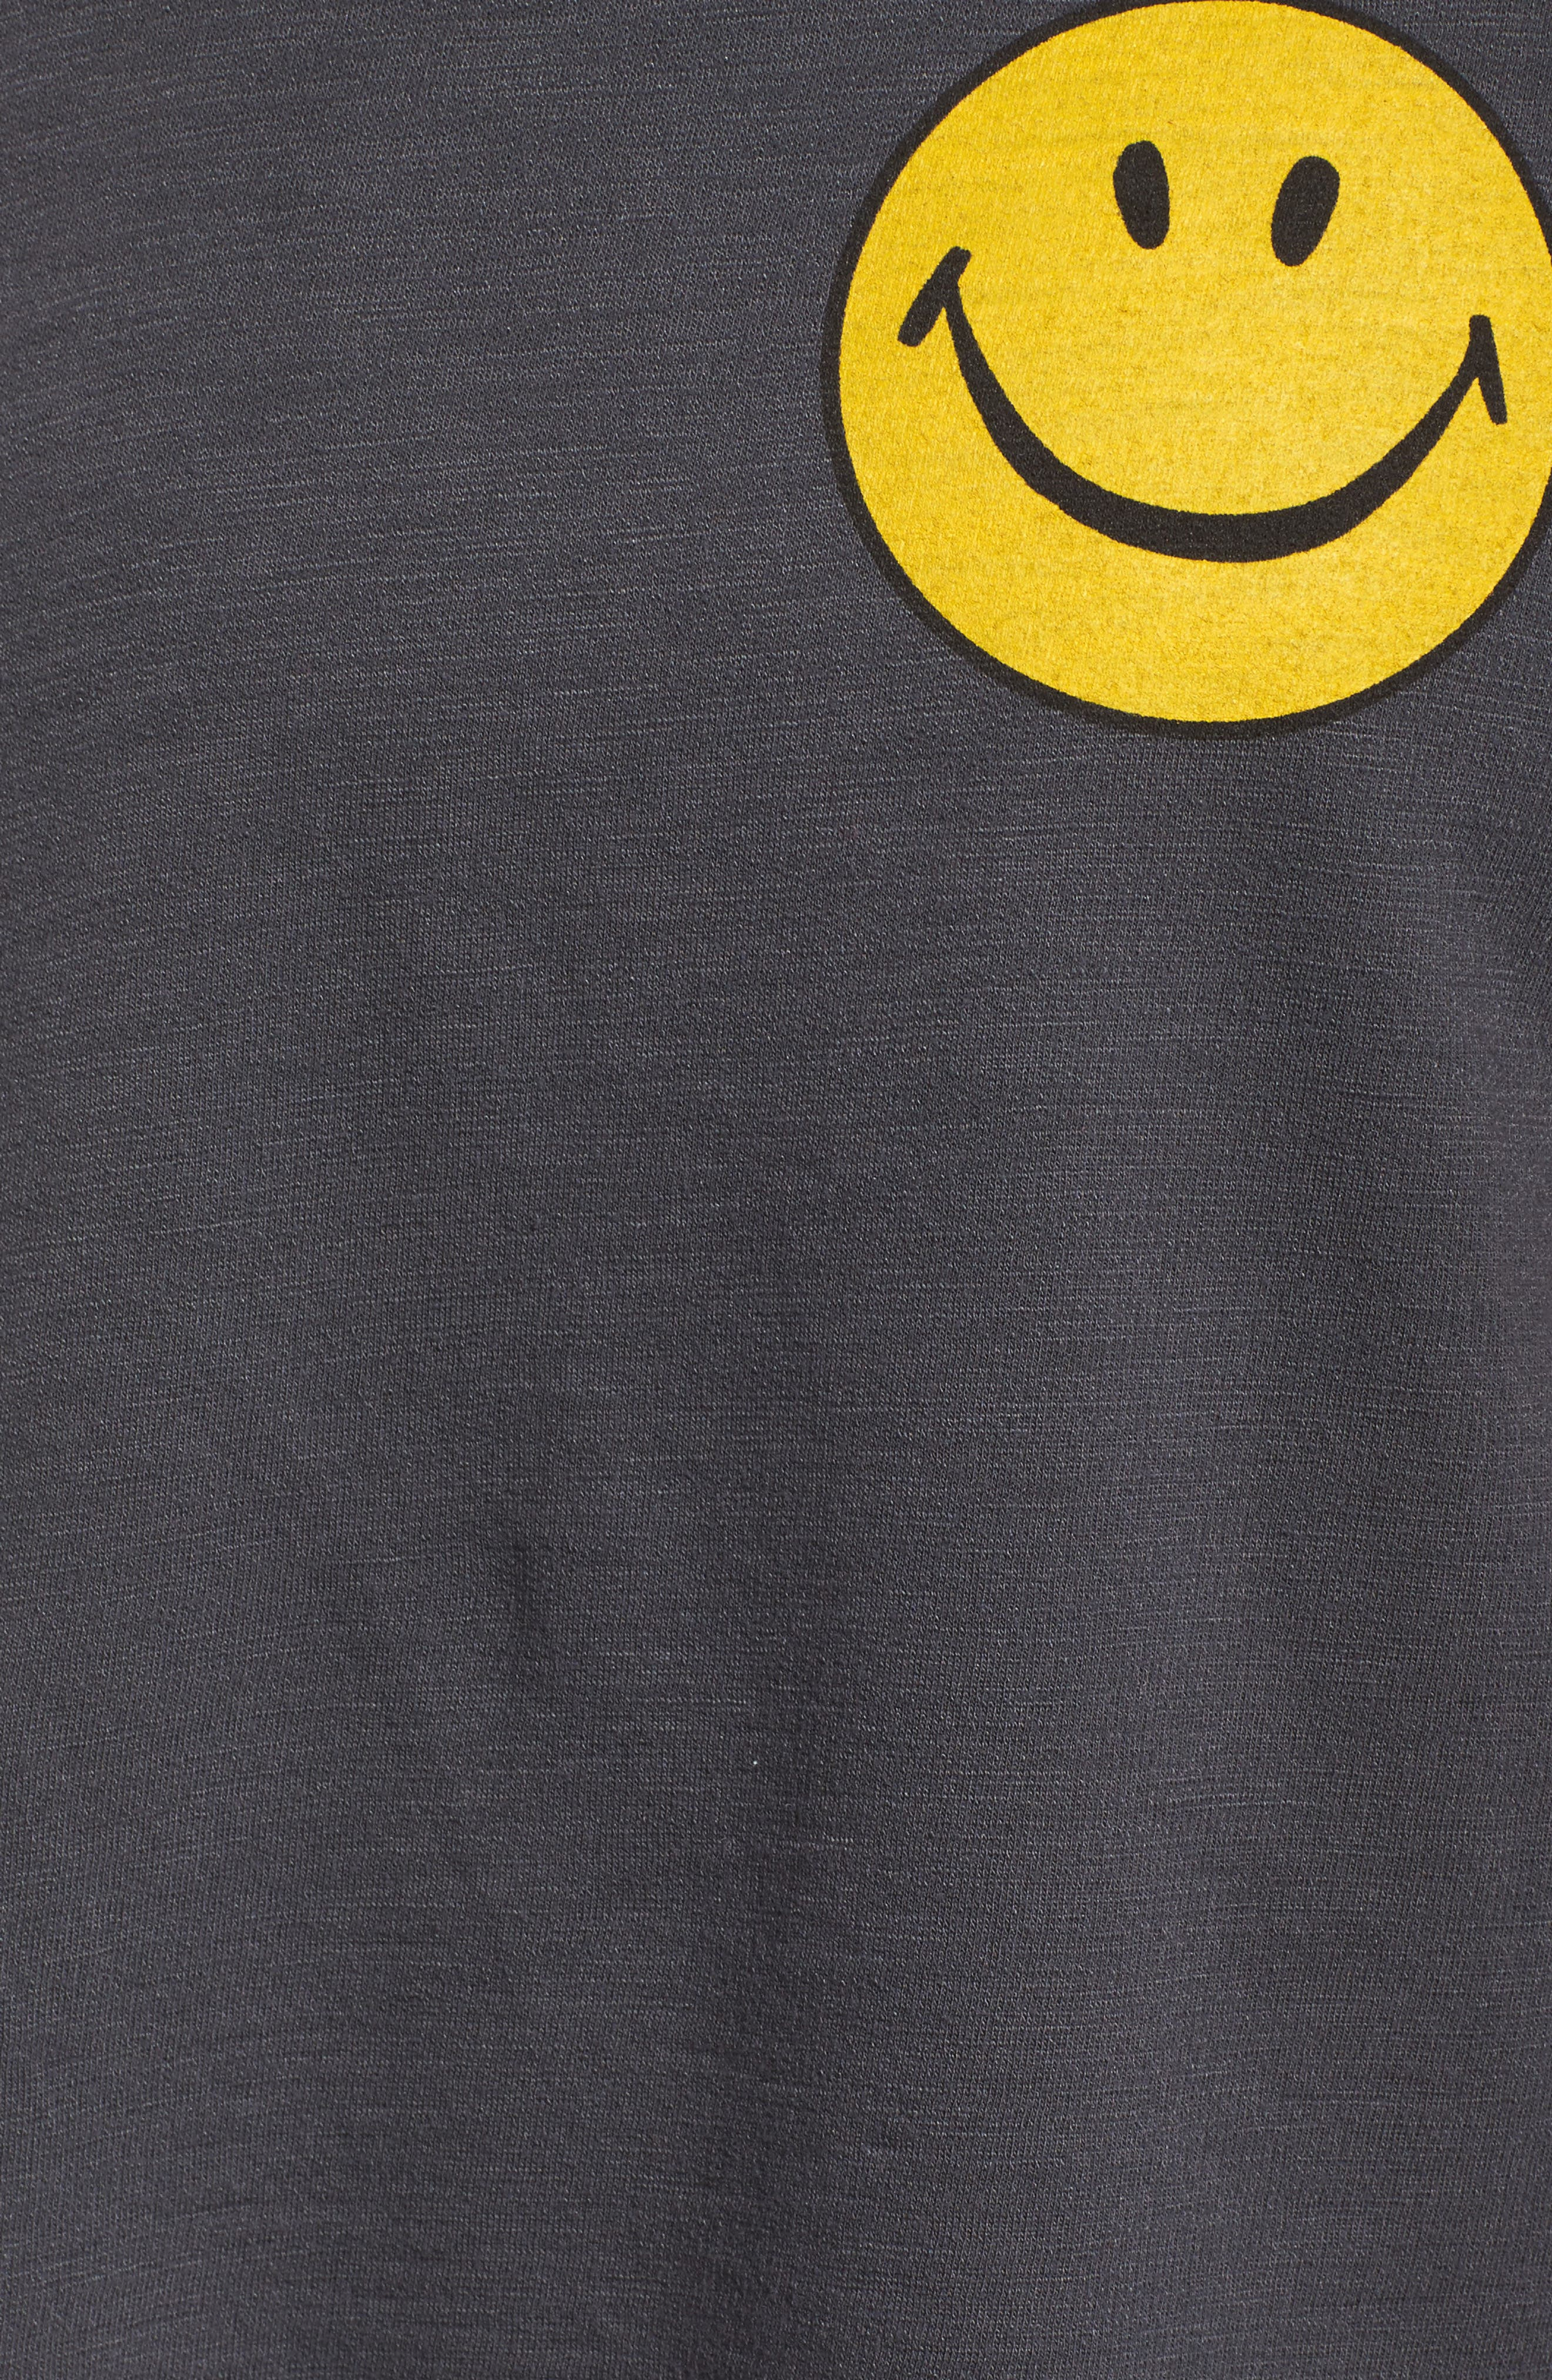 Smiley Muscle Tee,                             Alternate thumbnail 6, color,                             020